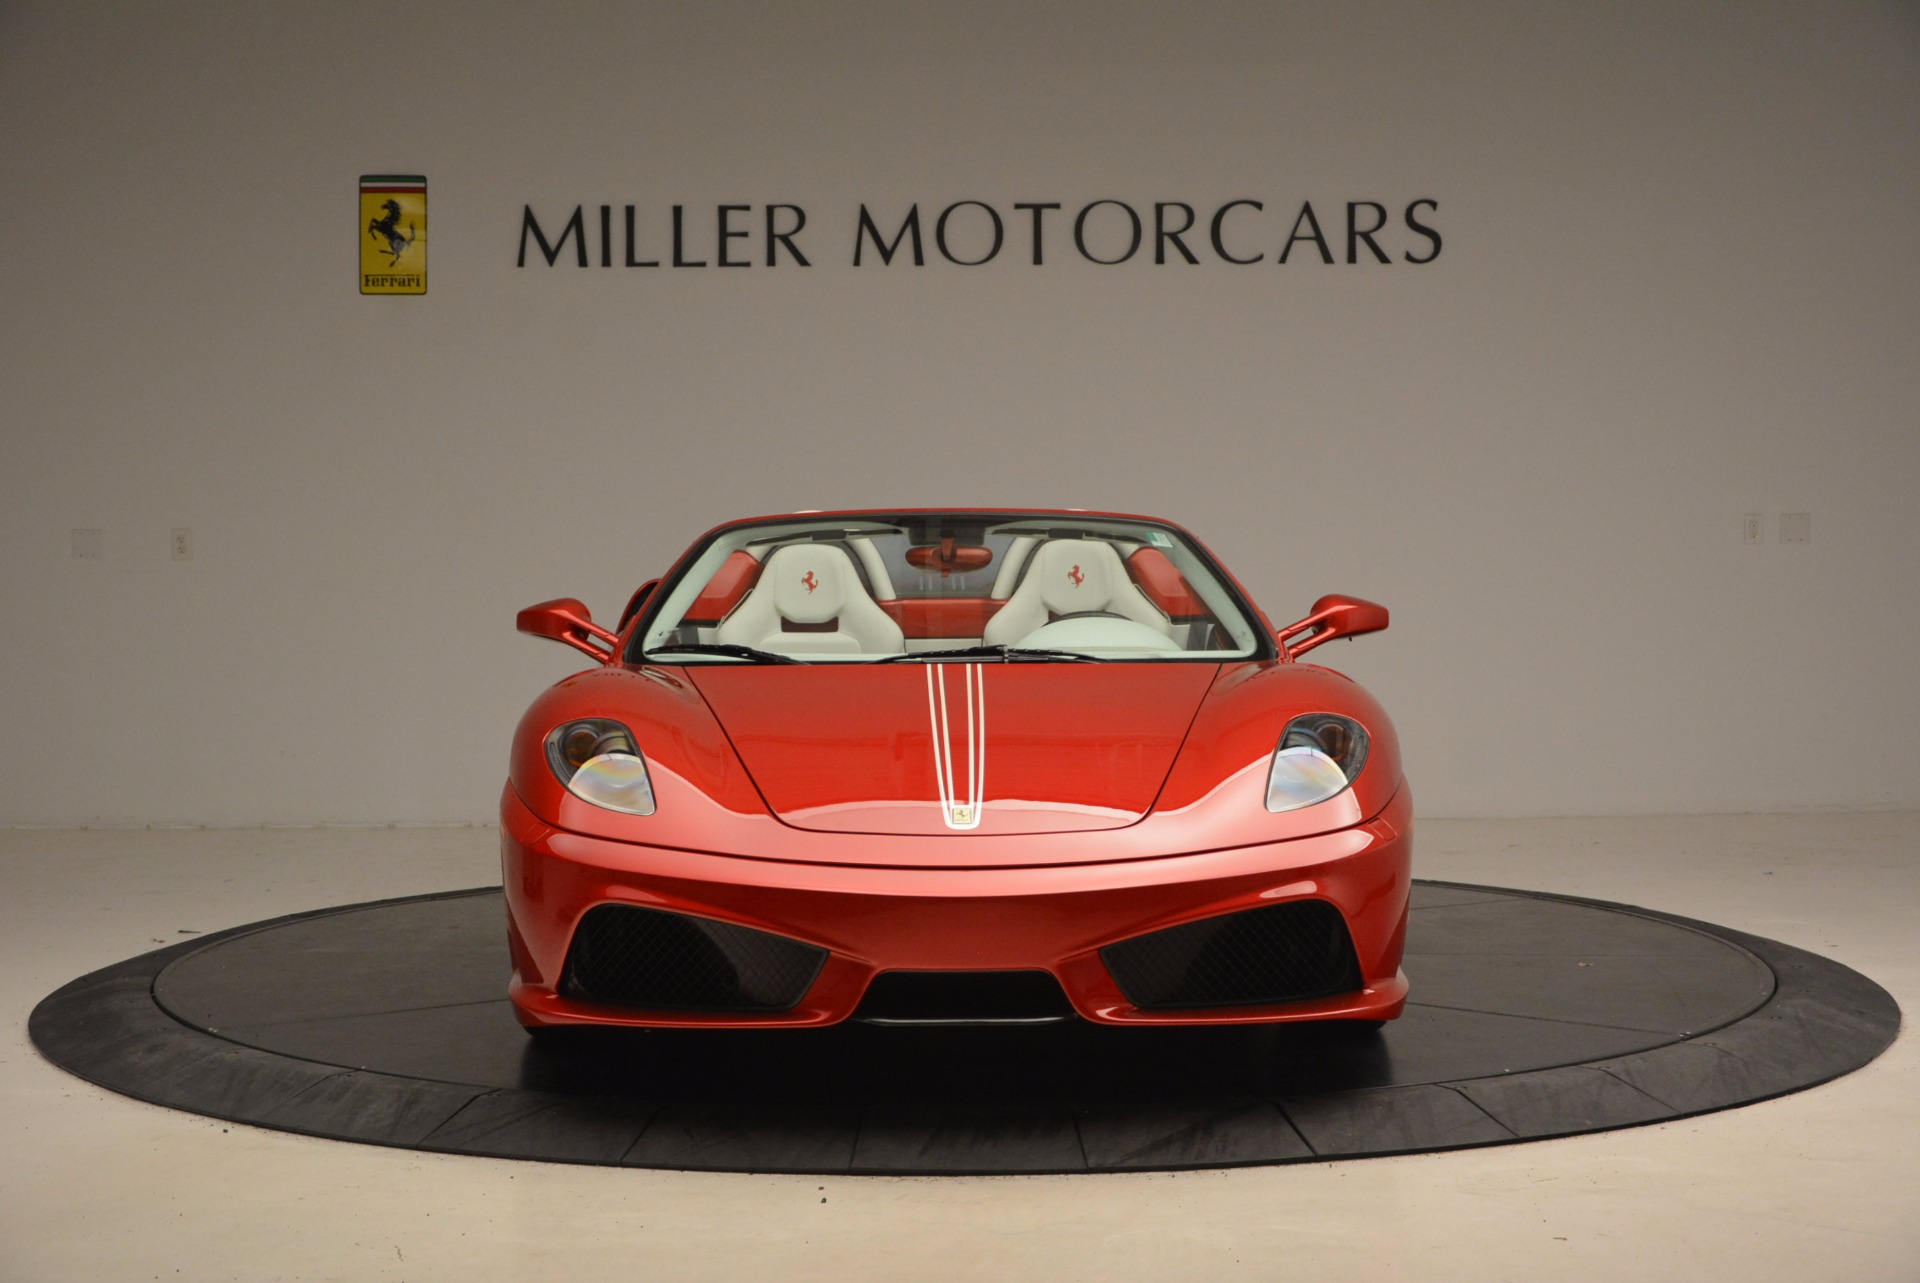 Used 2009 Ferrari F430 Scuderia 16M For Sale In Westport, CT 1398_p12